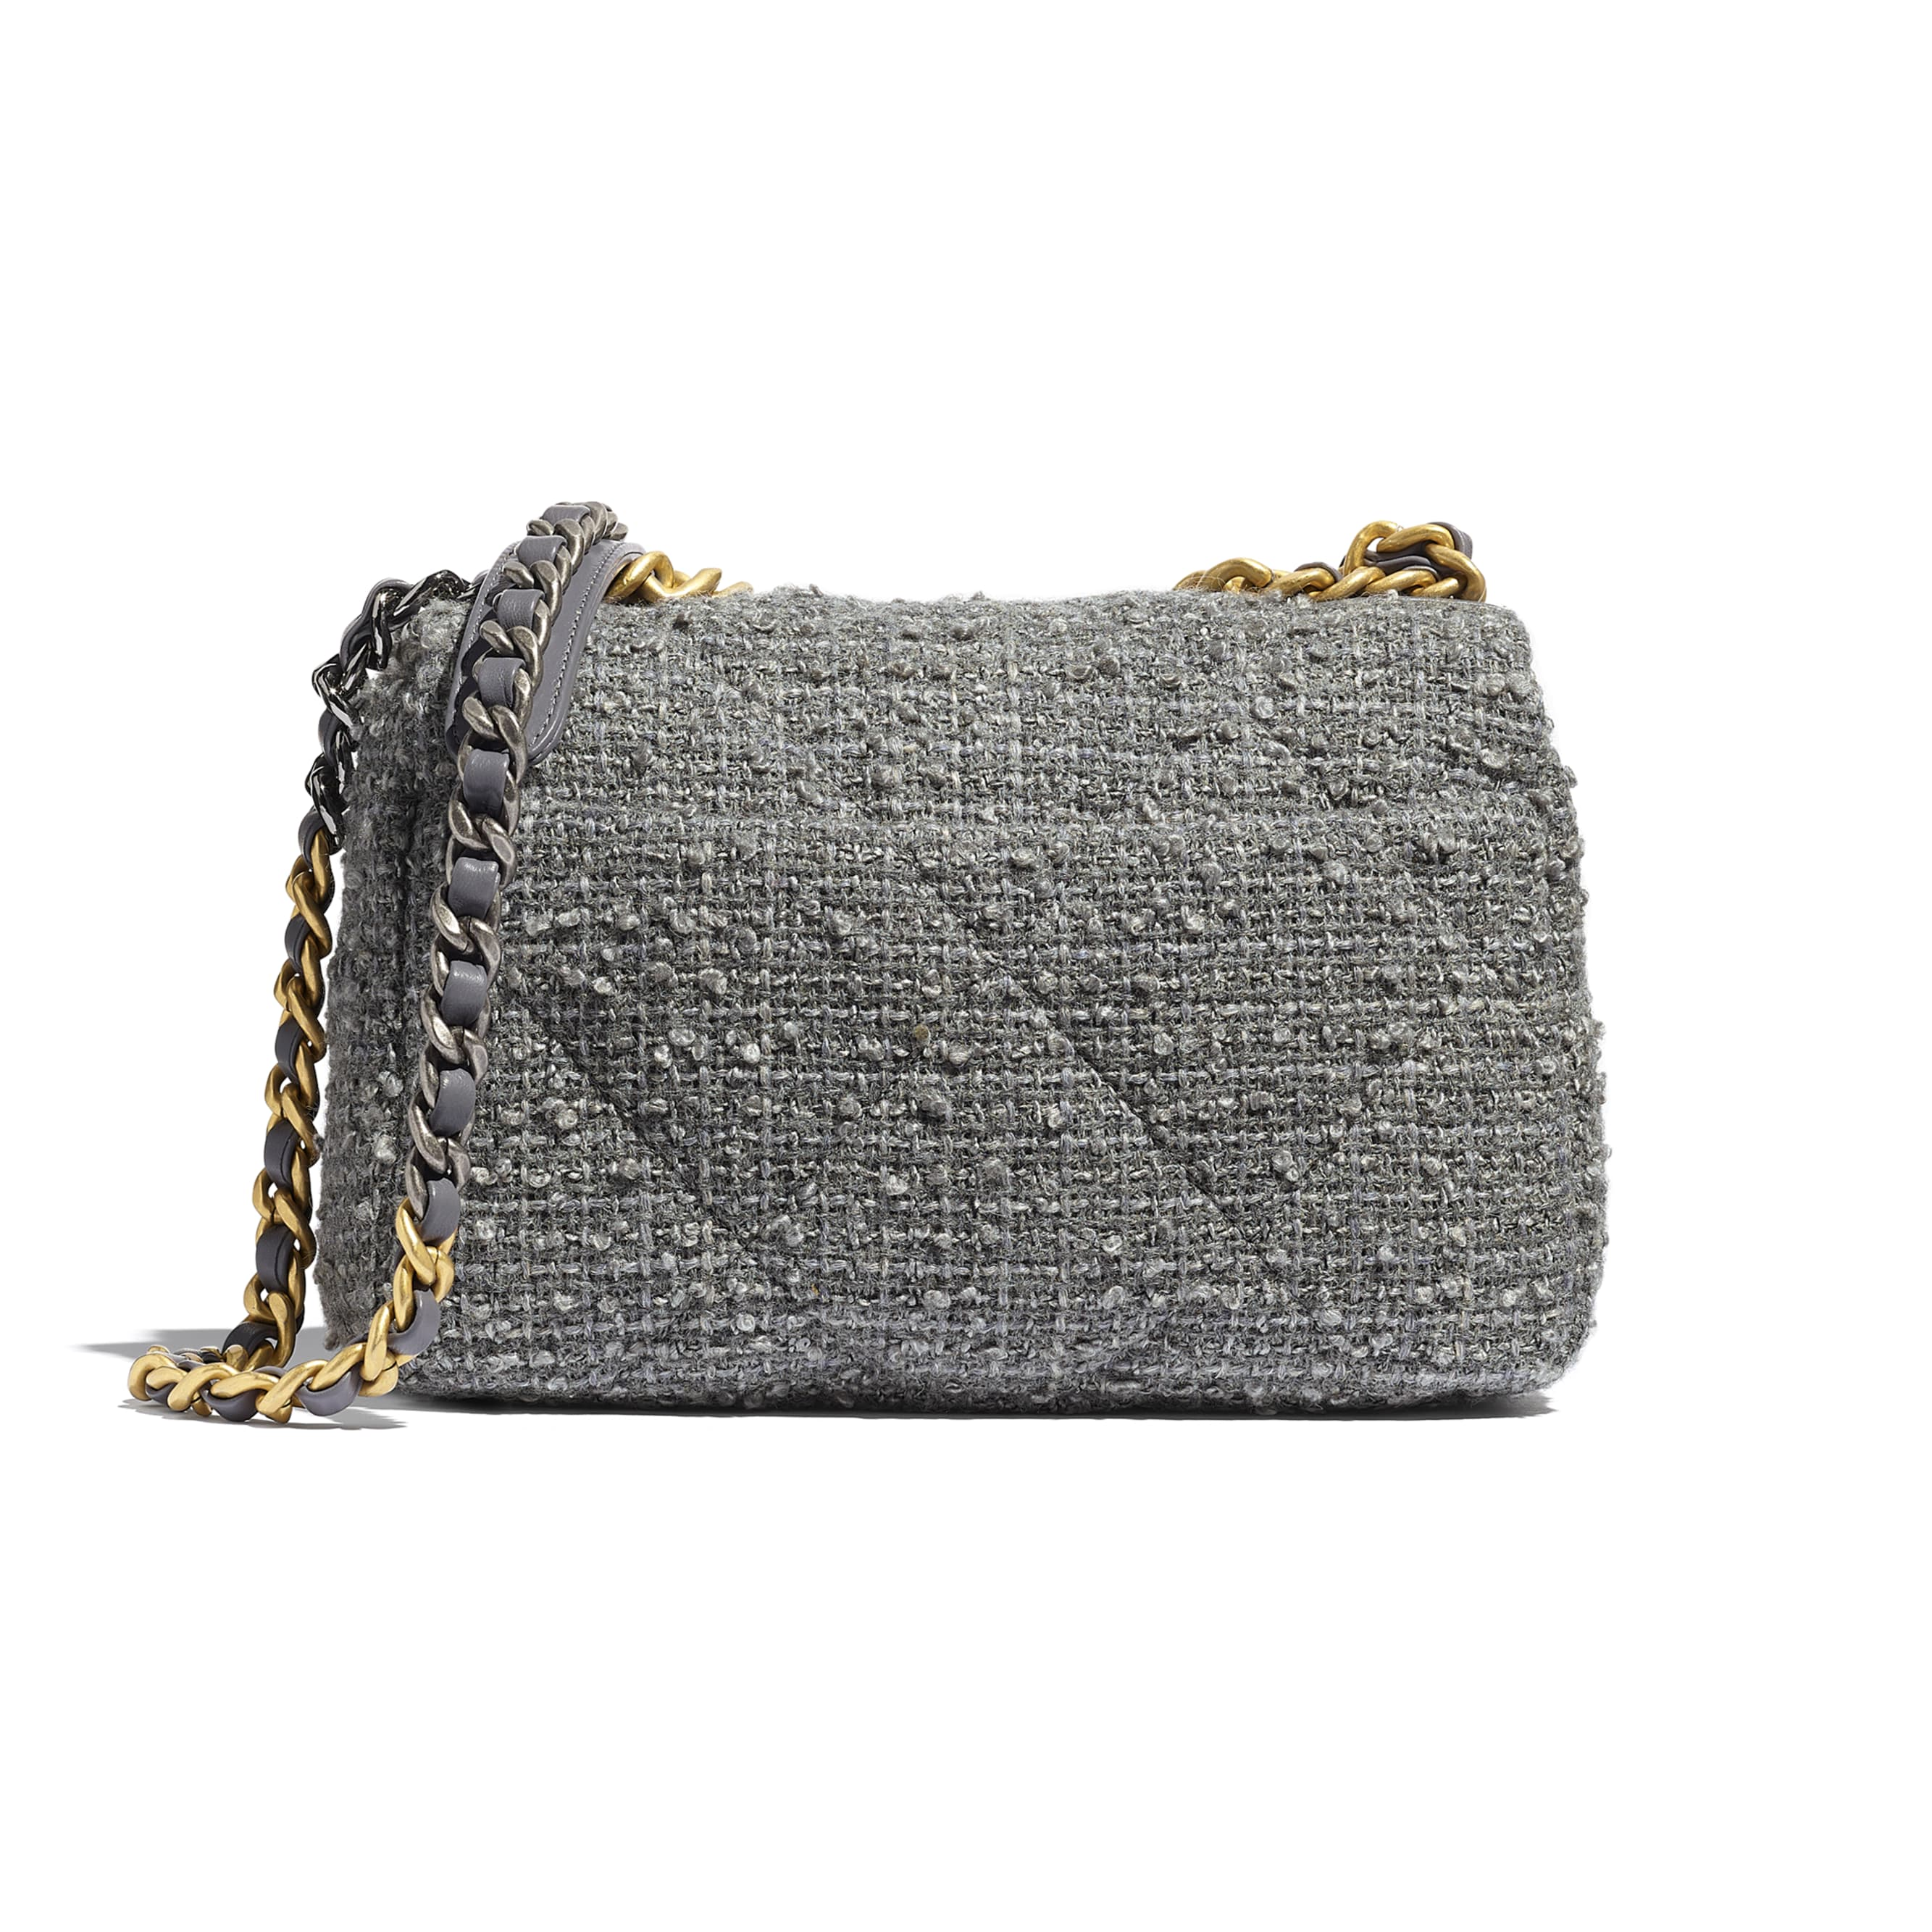 CHANEL 19 Flap Bag - Grey - Wool Tweed, Gold-Tone, Silver-Tone & Ruthenium-Finish Metal - CHANEL - Alternative view - see standard sized version